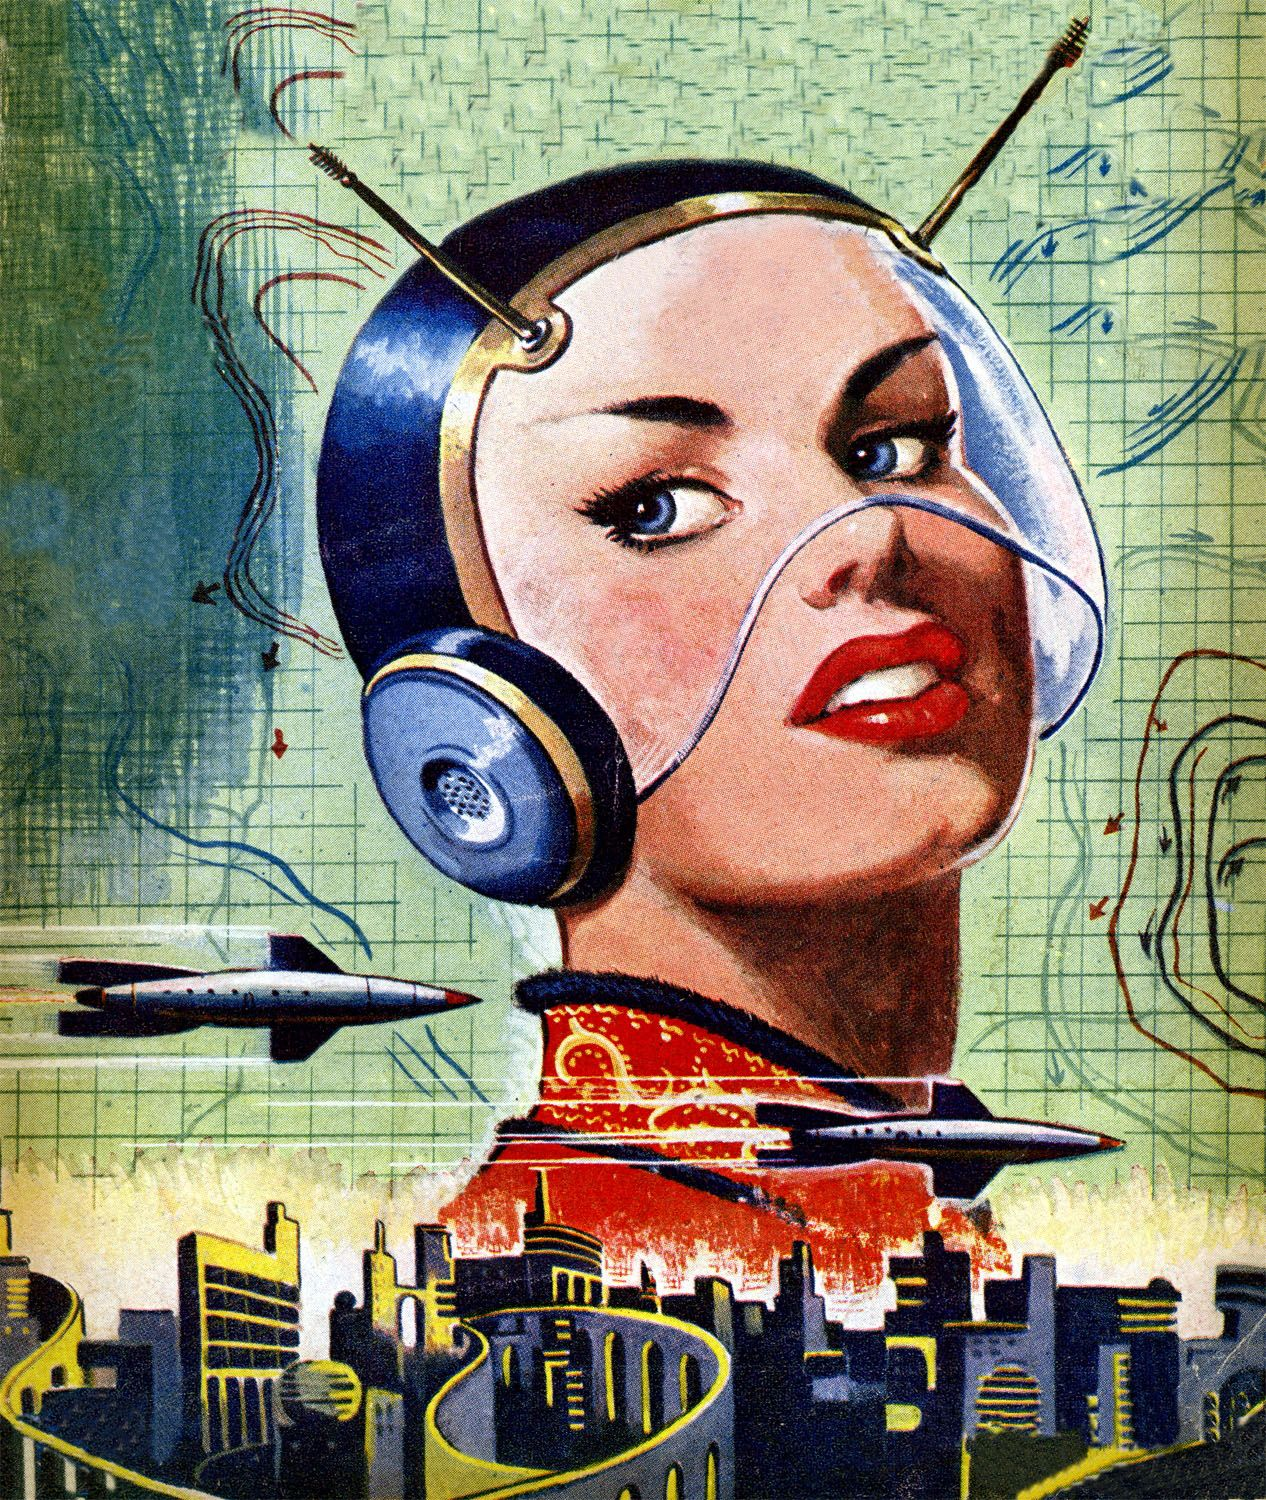 Vintage Sci Fi Art Added A New Photo: Anonmymous, Retro Sci-fi Girl